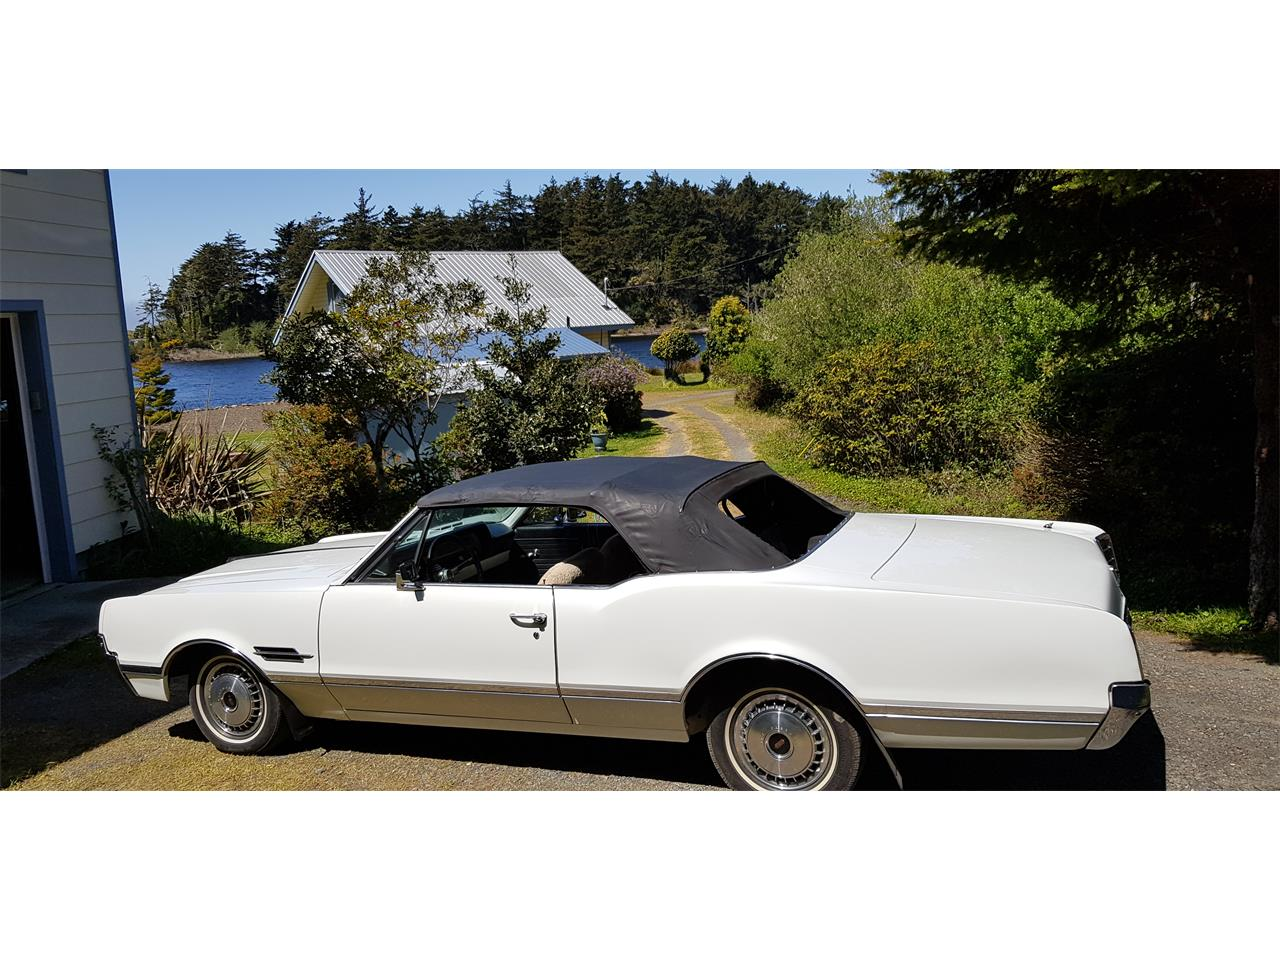 Large Picture of Classic 1966 Oldsmobile Cutlass Supreme - $15,000.00 Offered by a Private Seller - Q0S8